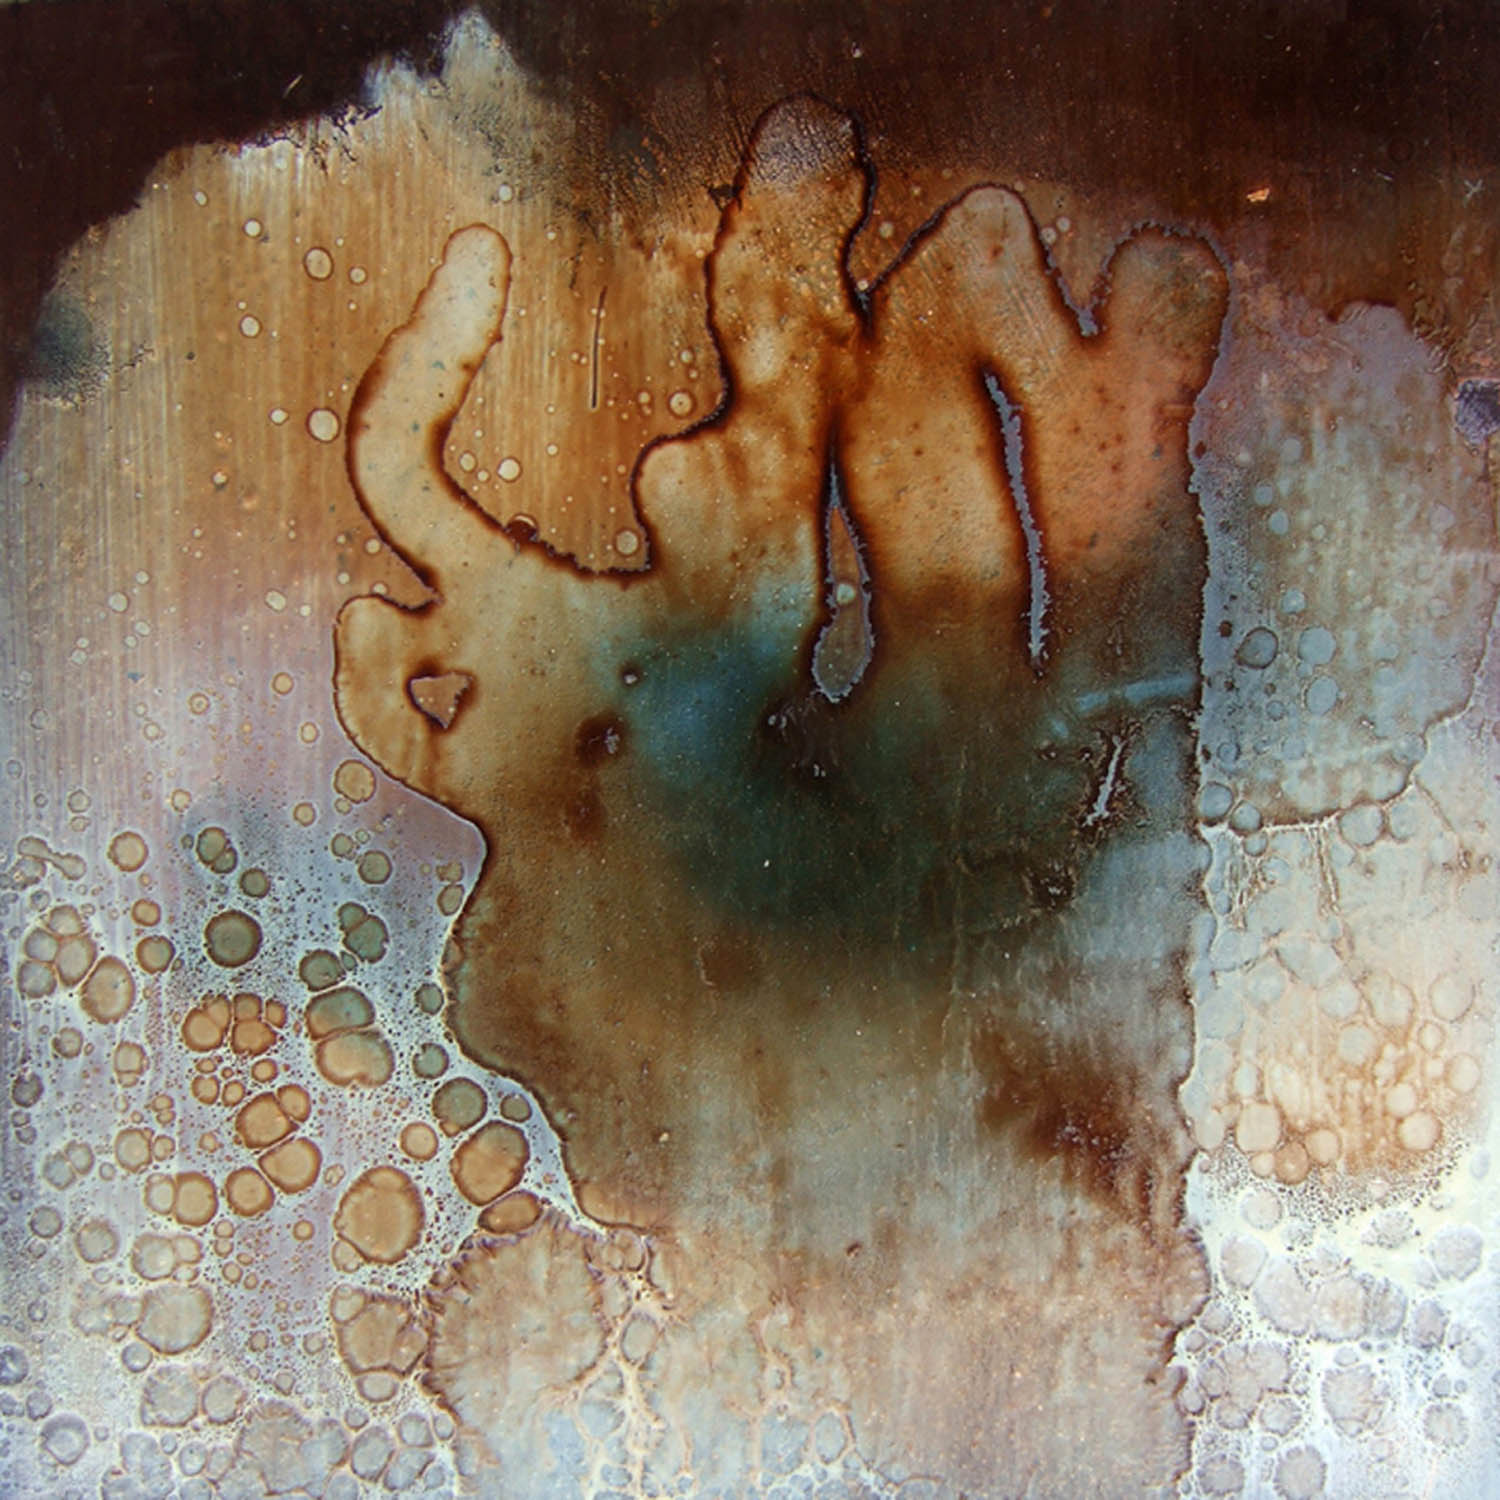 cosm 2b (2007), mixed media on particle board, 40 x 40cm